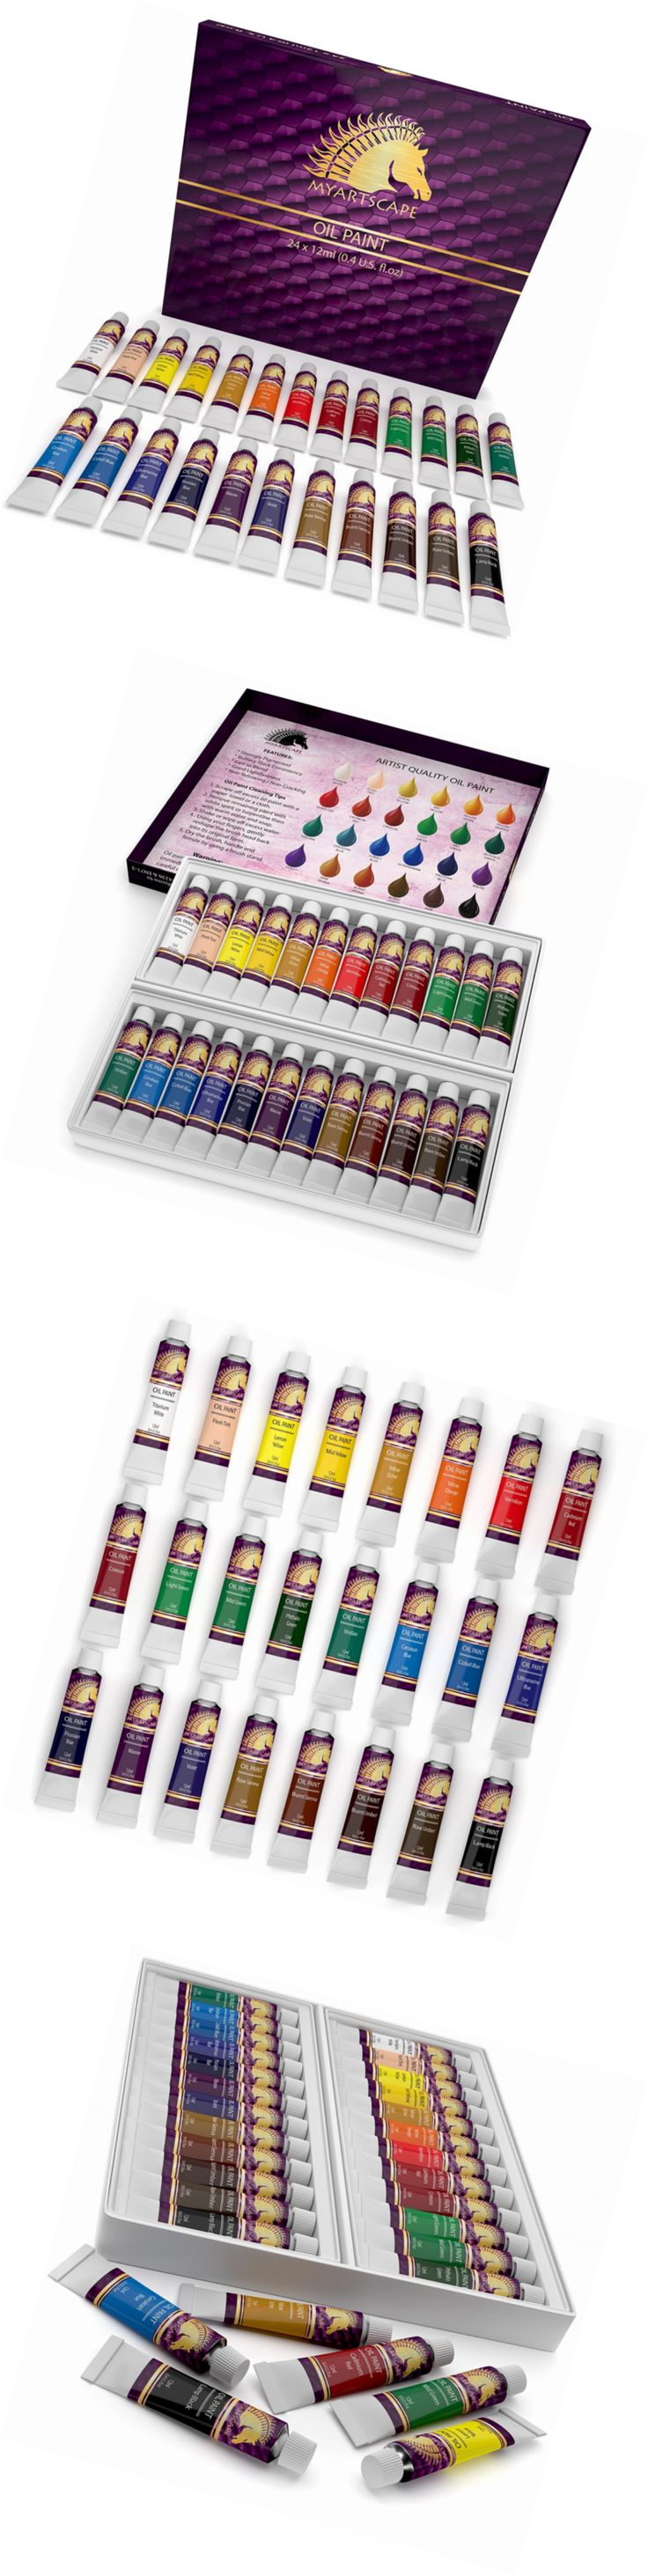 Oil Paint 28112: Oil Paint Set - 24 X 12Ml Tubes - Artist Quality Art Paints - Myartscape -> BUY IT NOW ONLY: $30.98 on eBay!